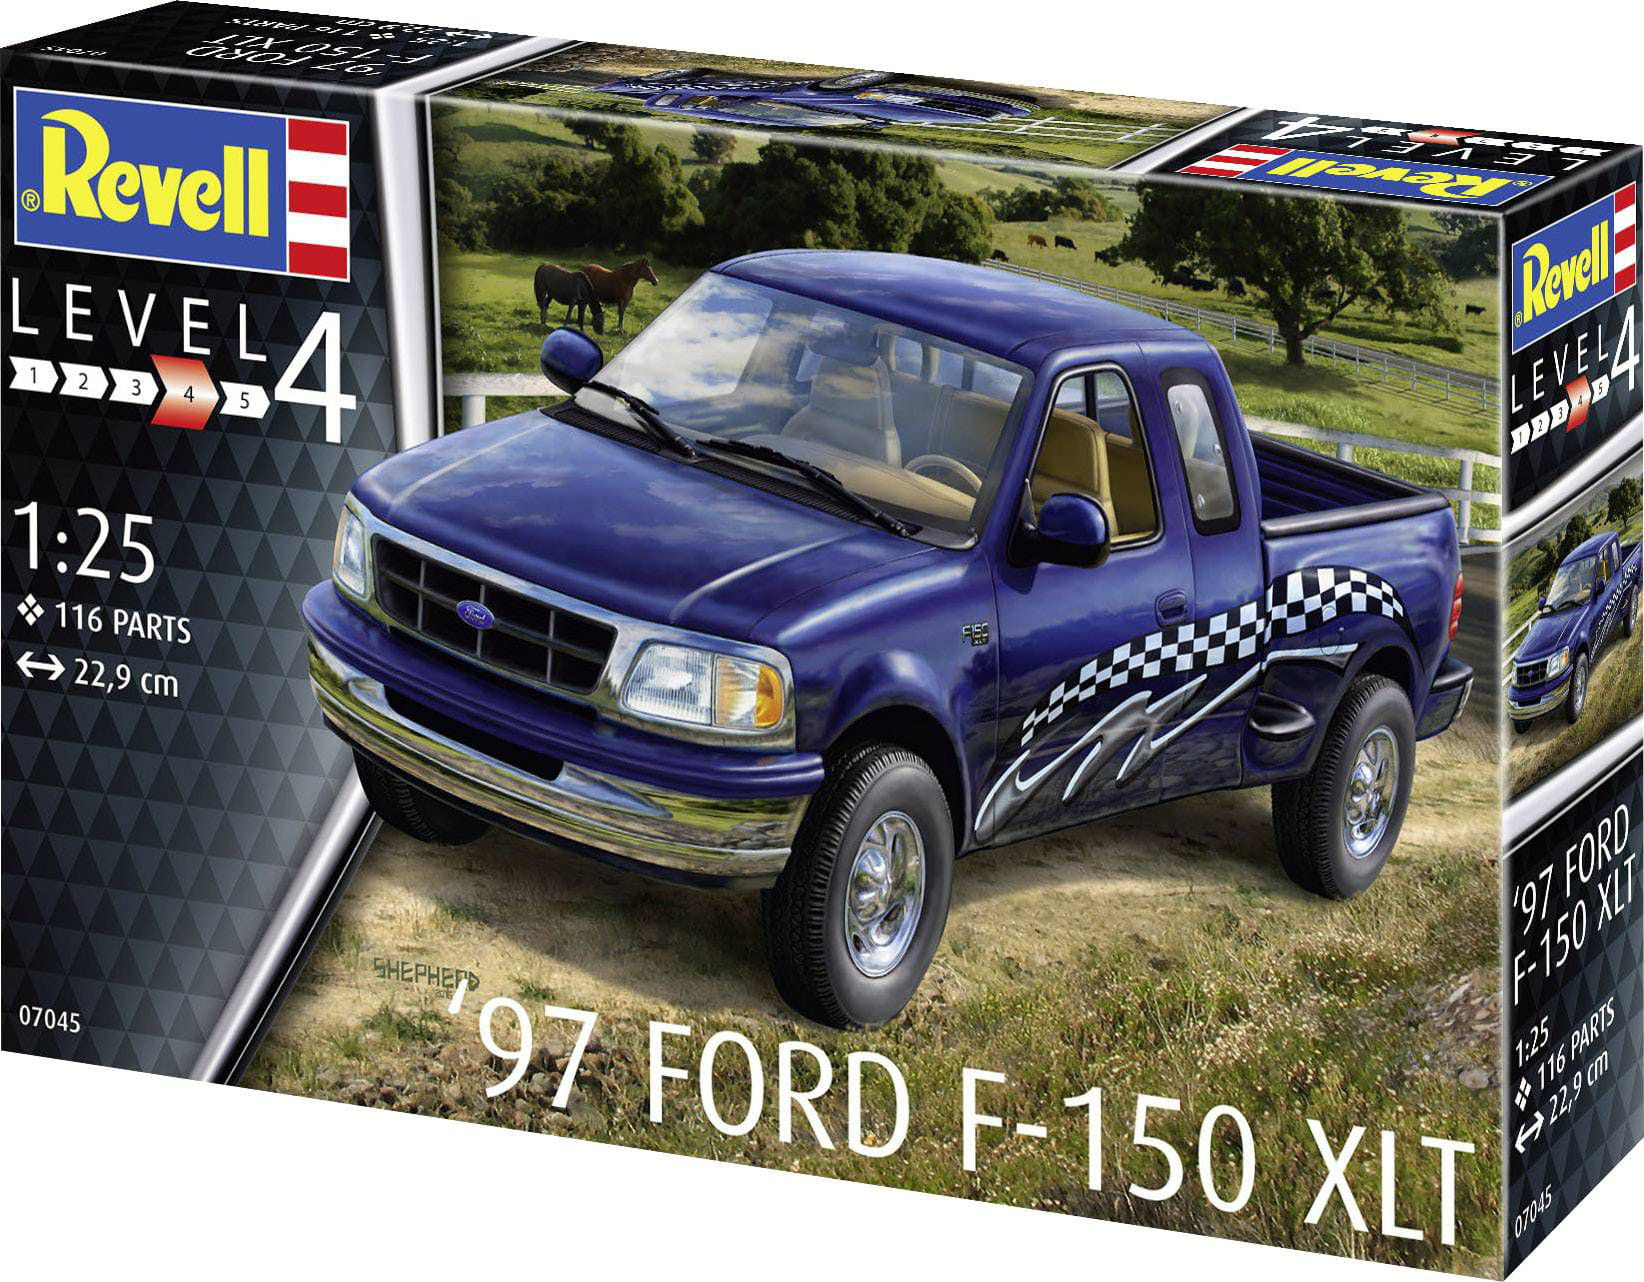 97 FORD F-150 XLT 1:25 REV07045 - KIT PARA MONTAR